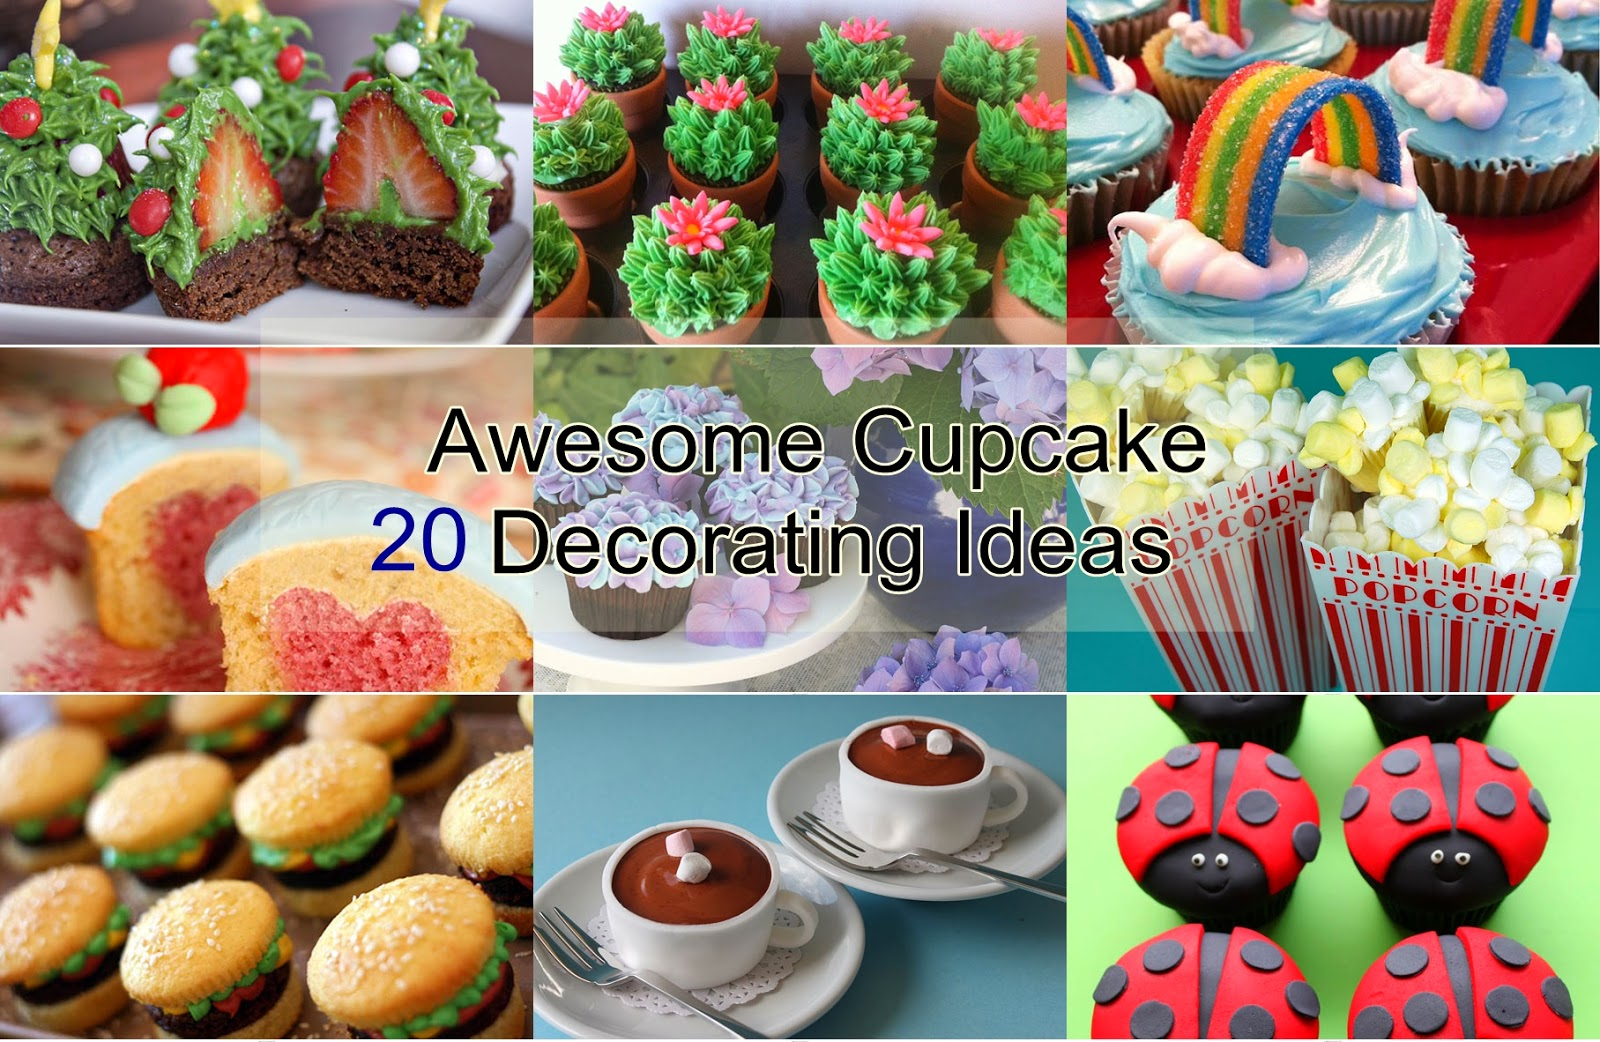 20 Awesome Cupcake Decorating Ideas - HANDY DIY